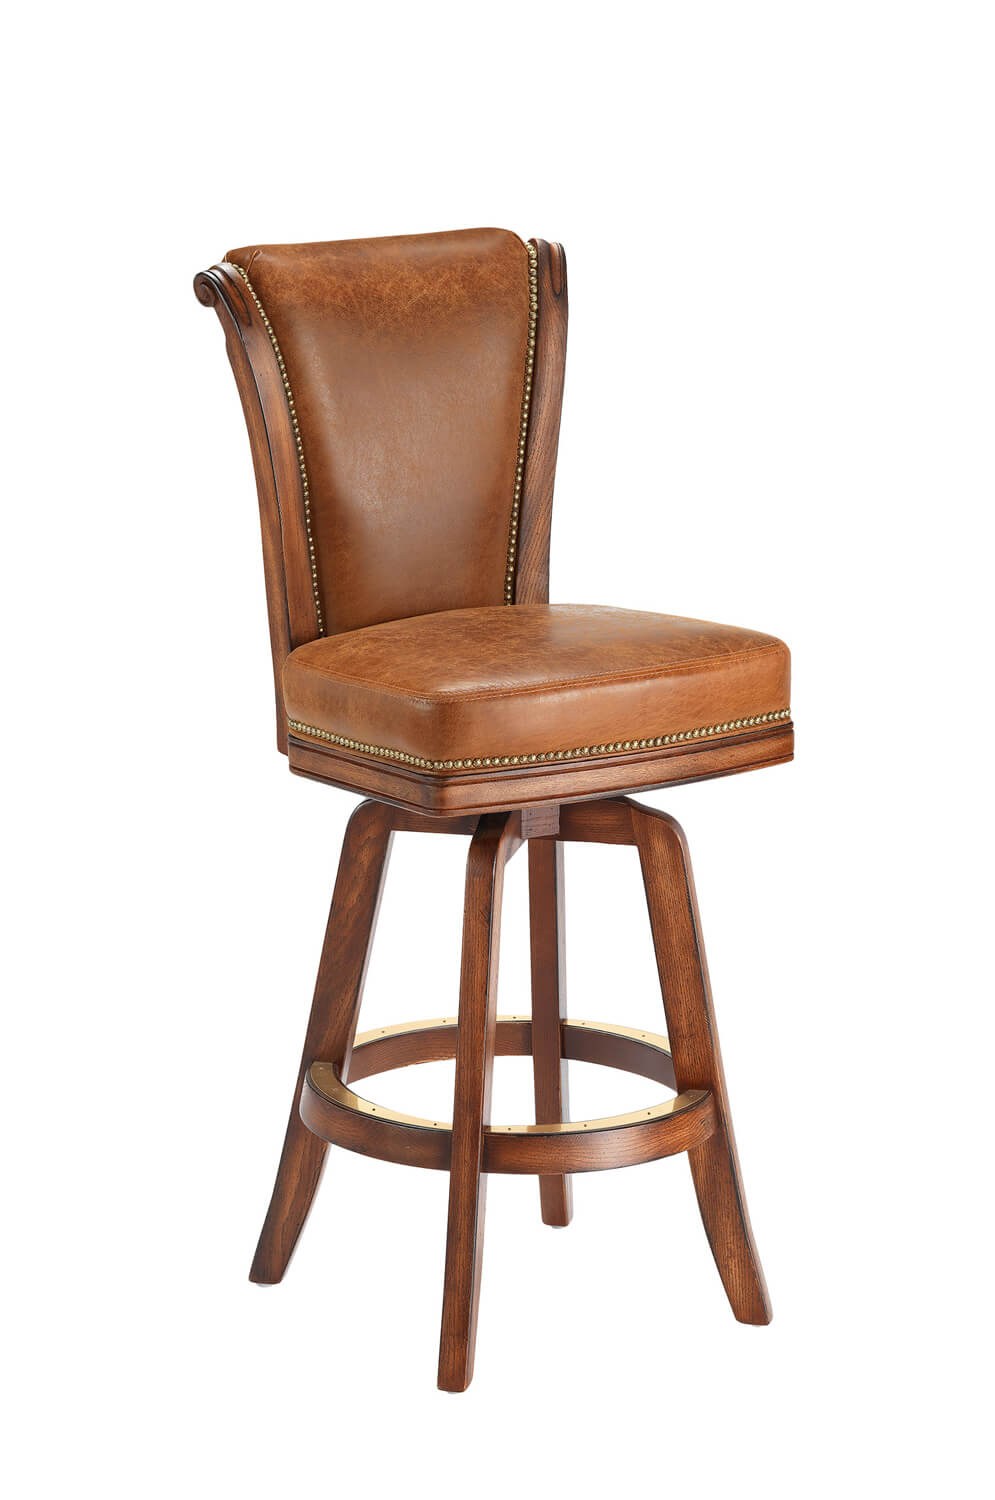 Darafeev's Classic Wooden Upholstered Swivel Stool